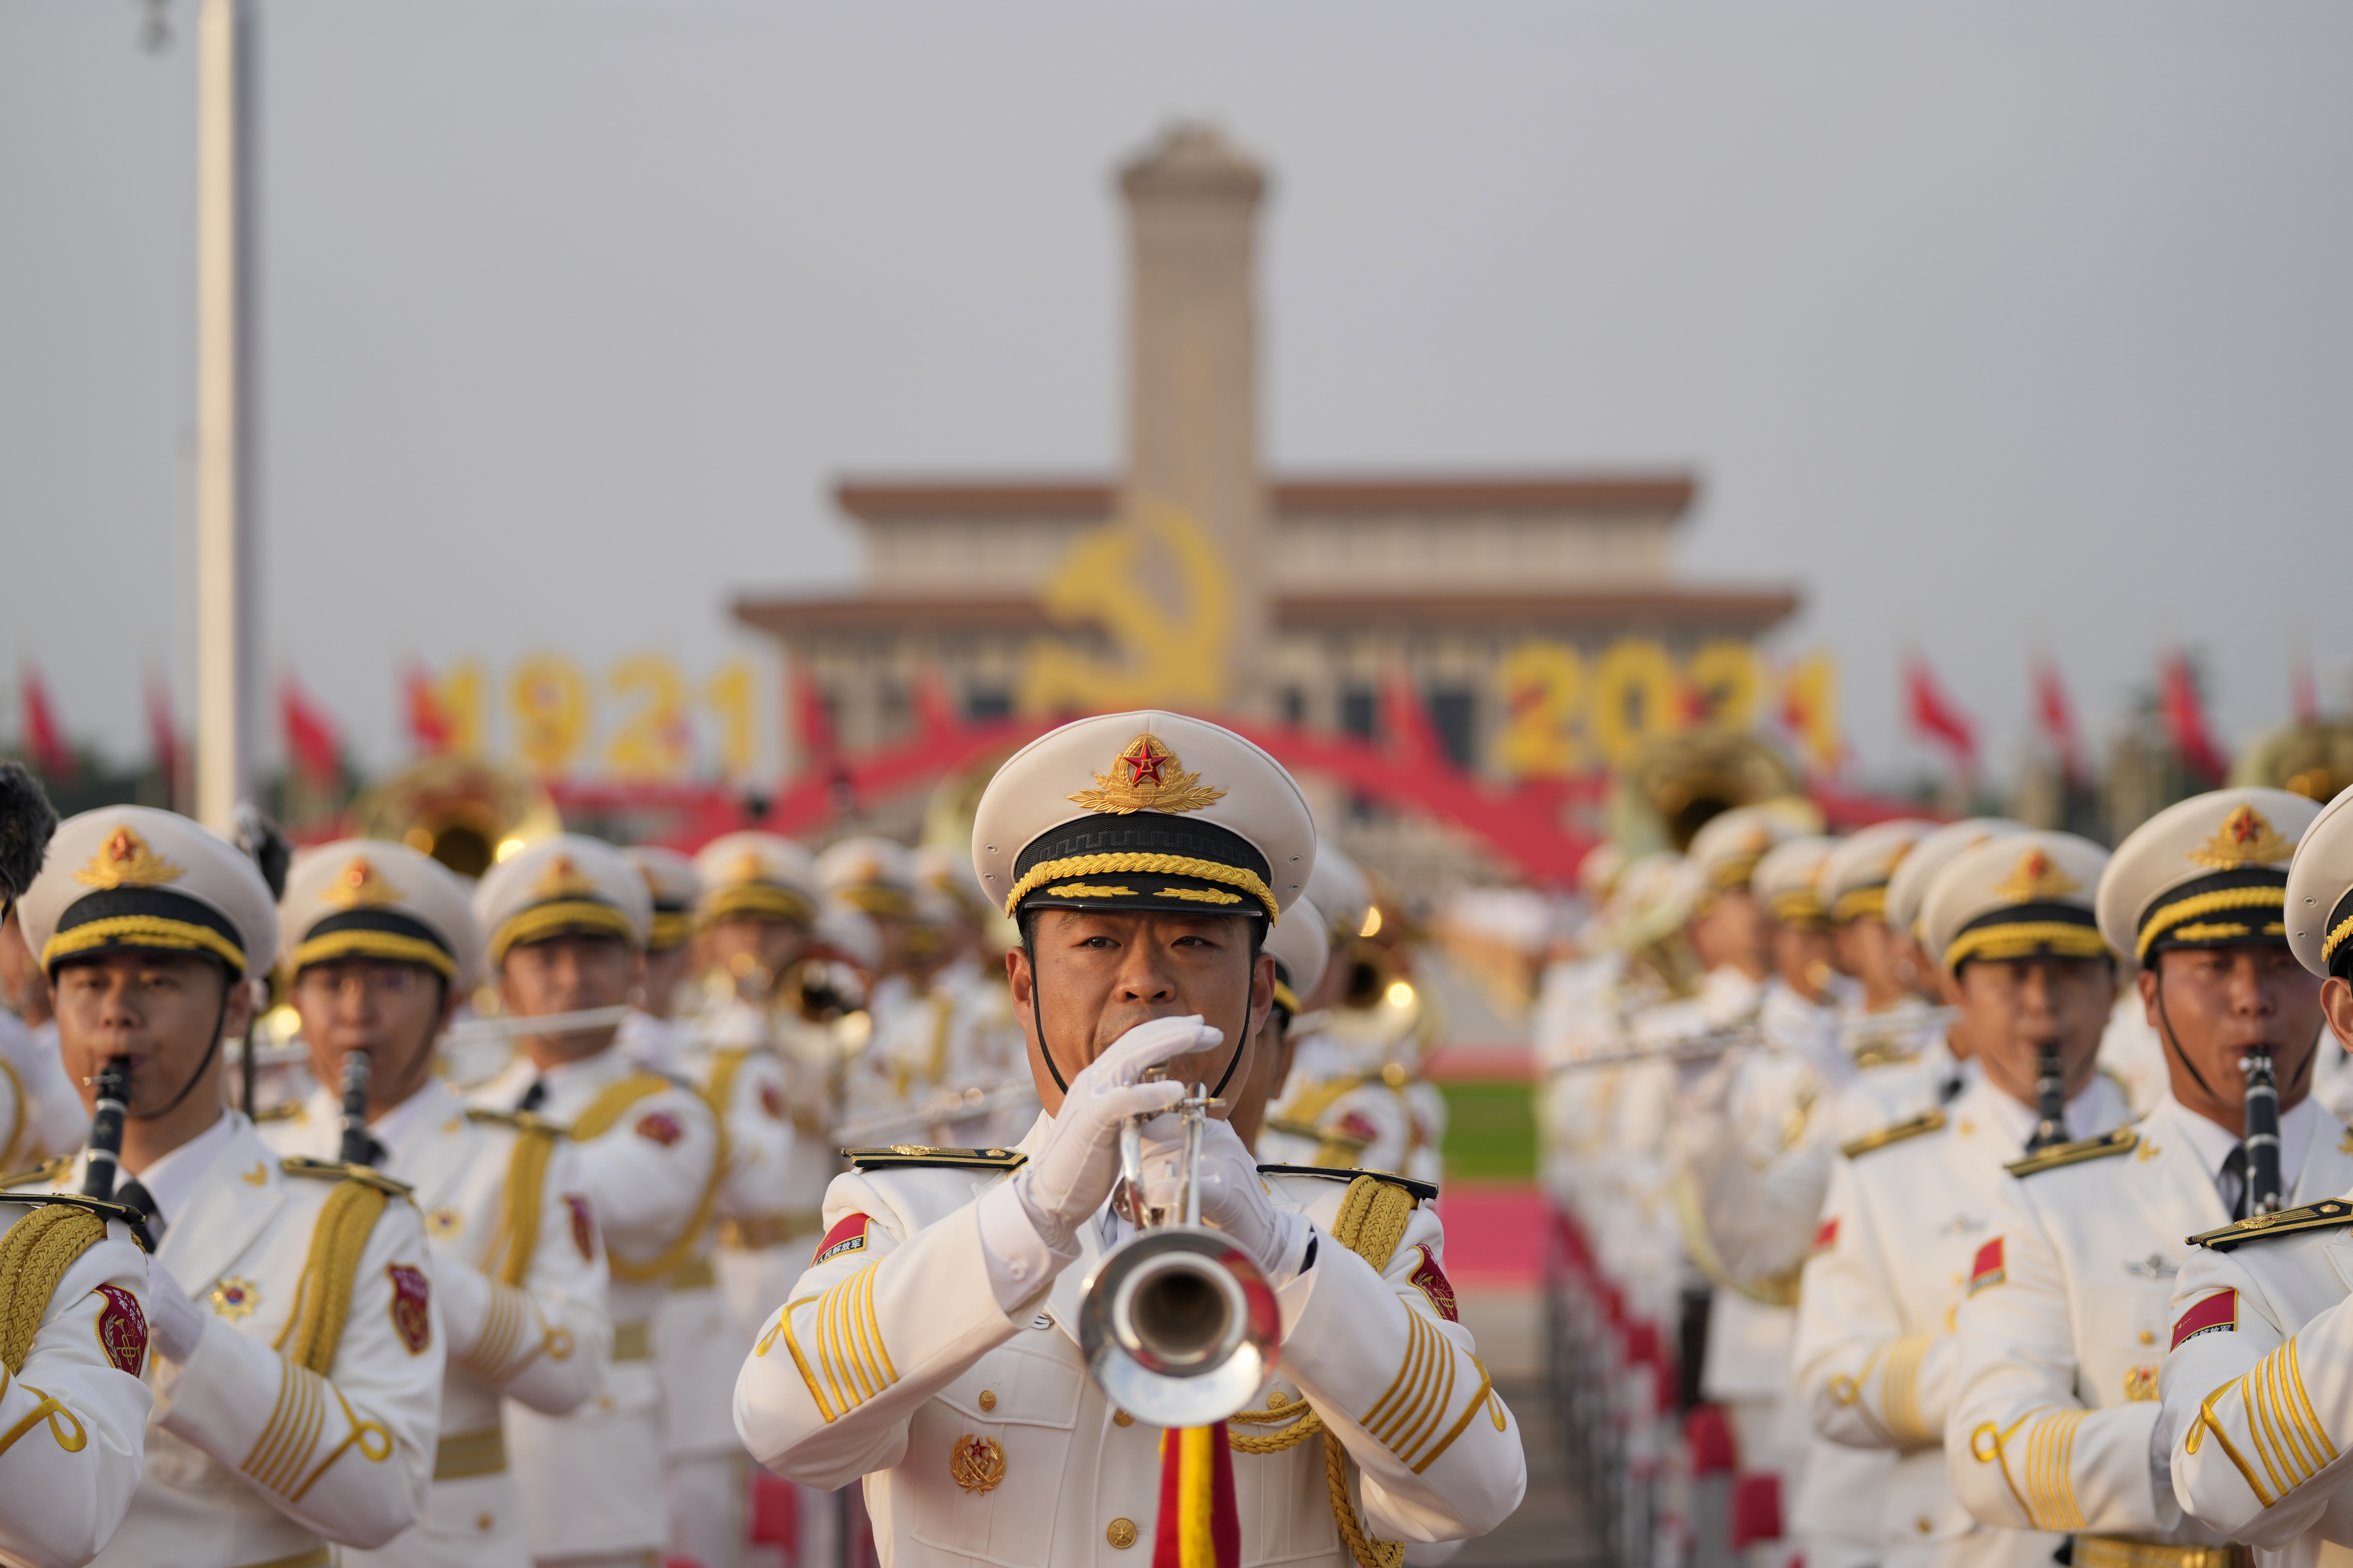 A military band rehearses to mark the anniversary of the founding of China's Communist Party.